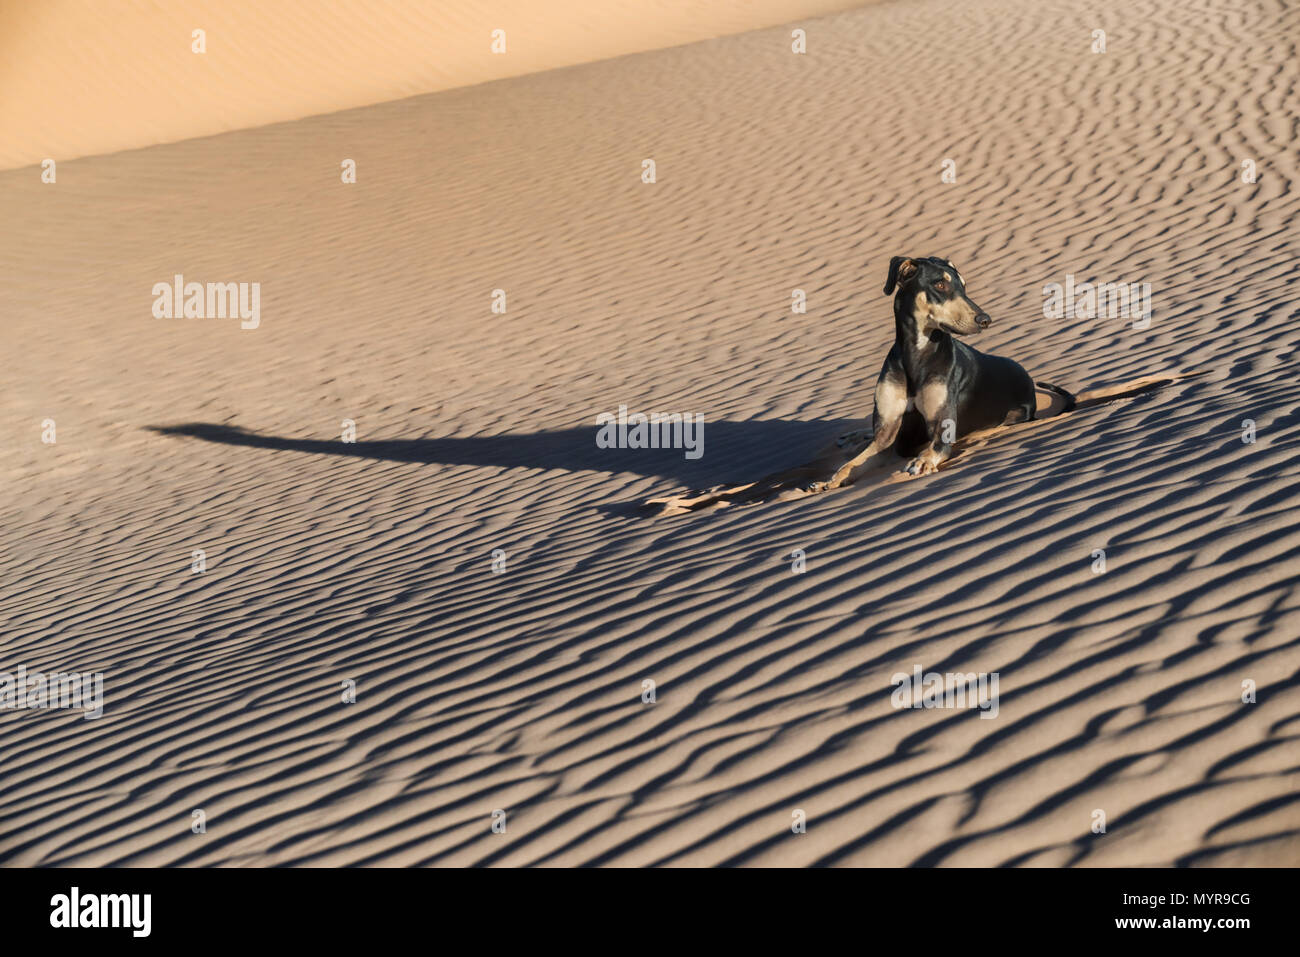 A young black Sloughi dog (Arabian greyhound) rests in the sand dunes in the Sahara desert of Morocco. High key image with muted colours. - Stock Image